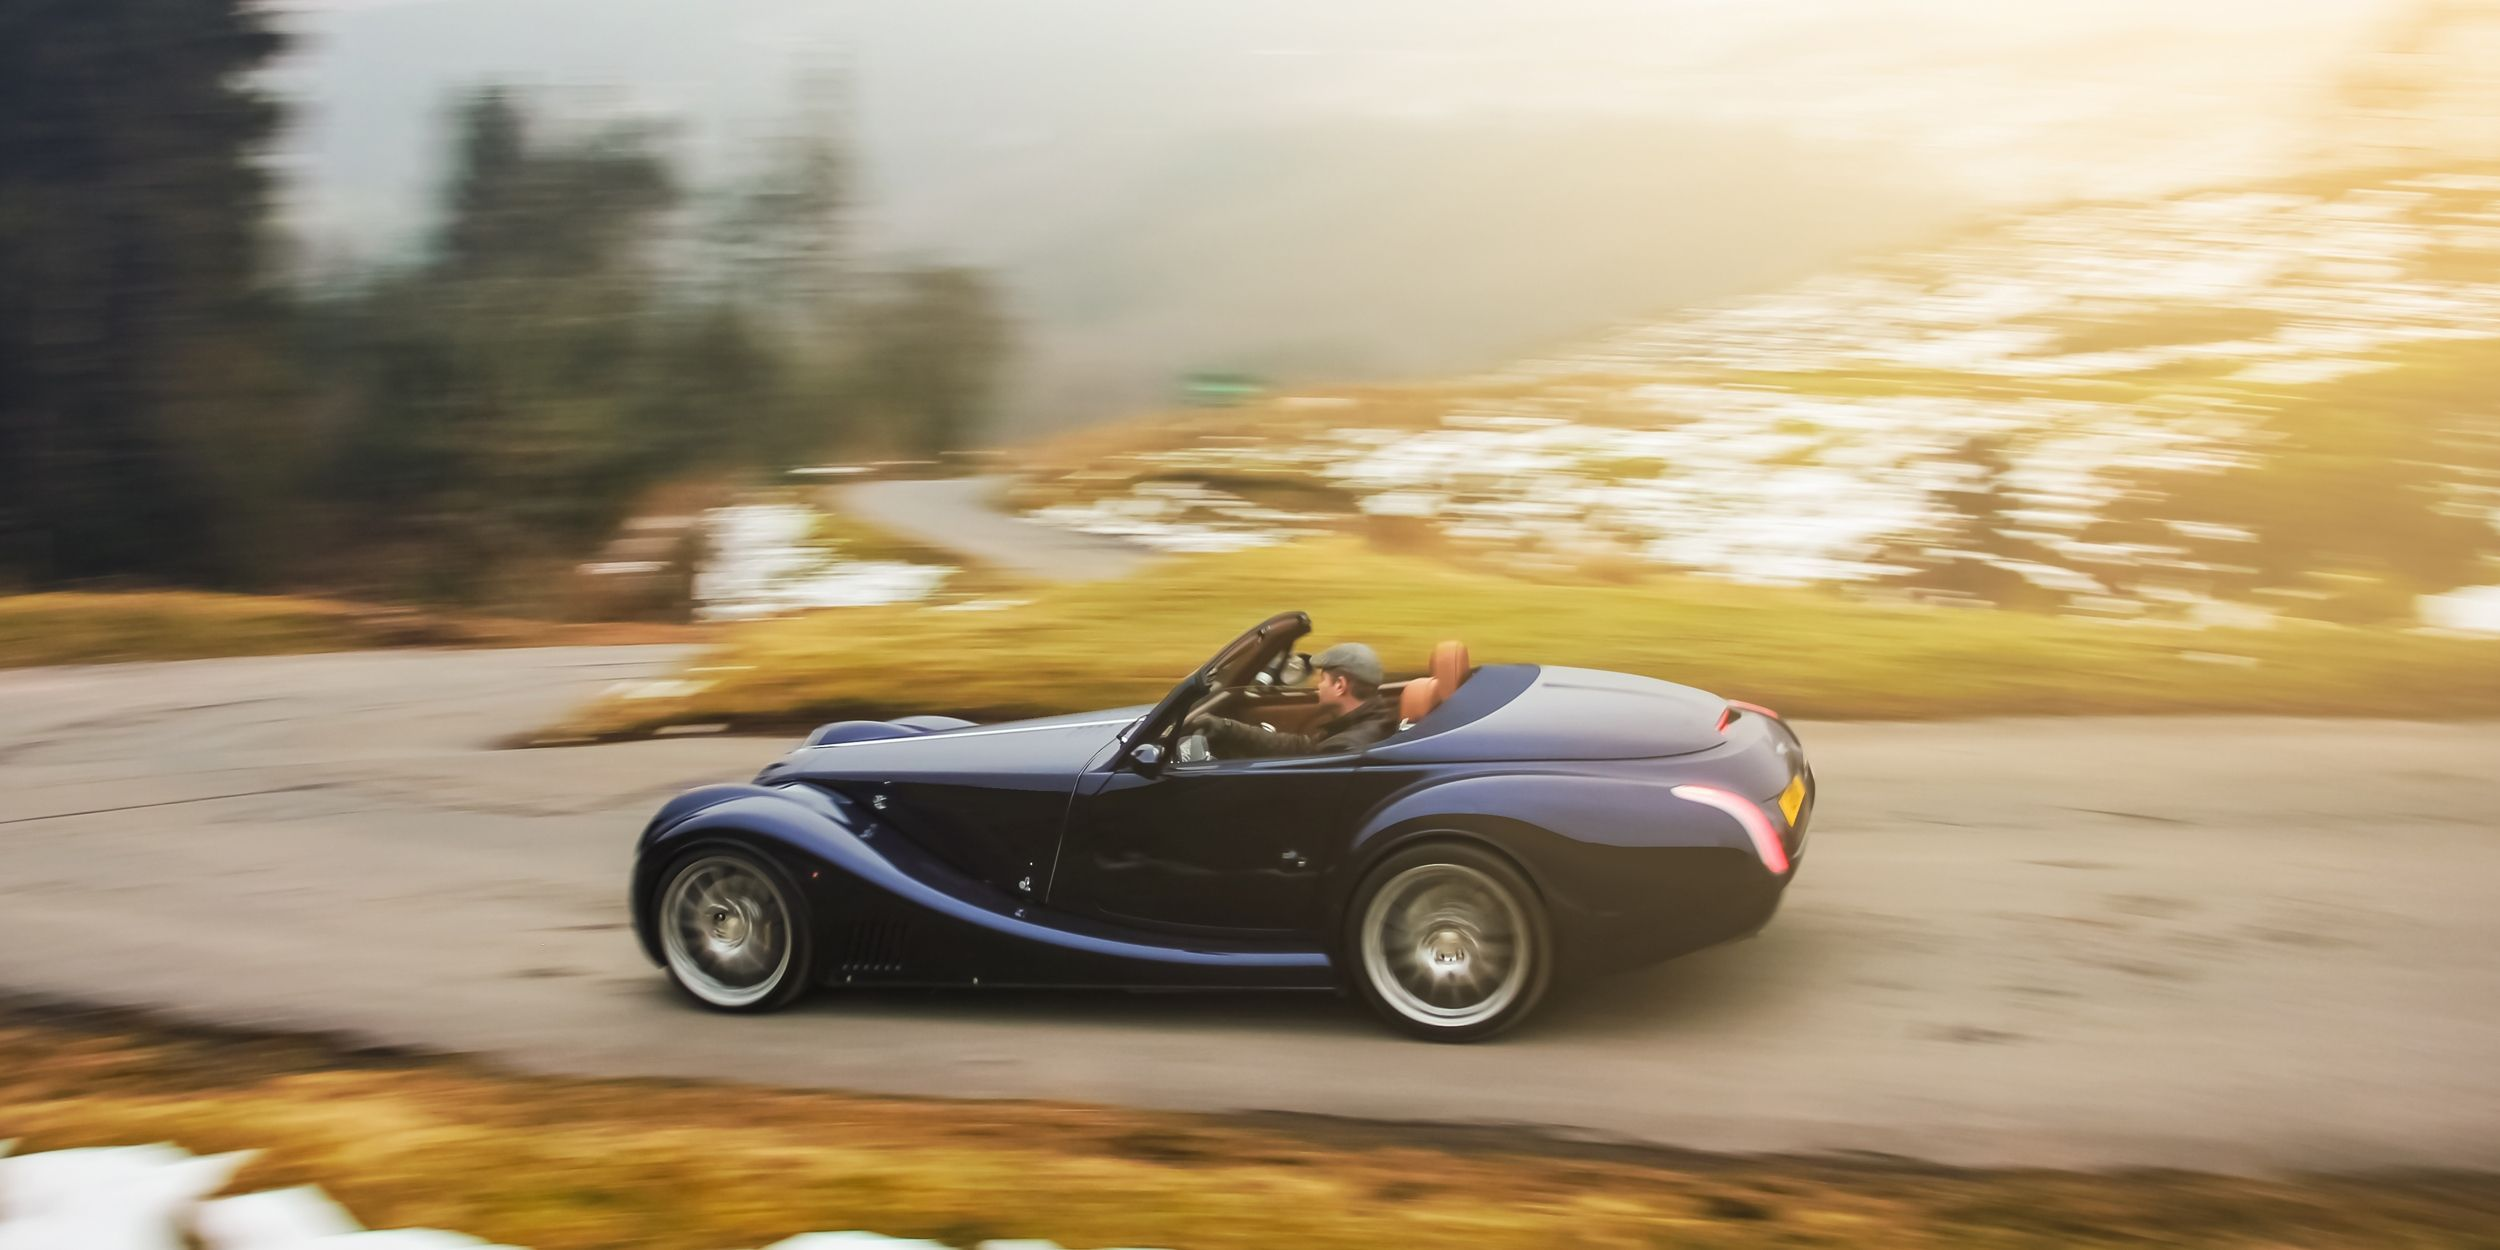 "<p>Morgan has been made popular in the car world thanks to its wacky open-air three-wheeler, but before that, it had the Aero 8. Powered by a BMW V8, it relied heavily on retro design, and <a href=""http://www.roadandtrack.com/new-cars/first-drives/reviews/a9558/morgan-aero-8/"" data-href=""http://www.roadandtrack.com/new-cars/first-drives/reviews/a9558/morgan-aero-8/"" target=""_blank"">actually drove well</a>. Since Morgan has always been a niche car brand, finding one for sale is a challenge. </p>"